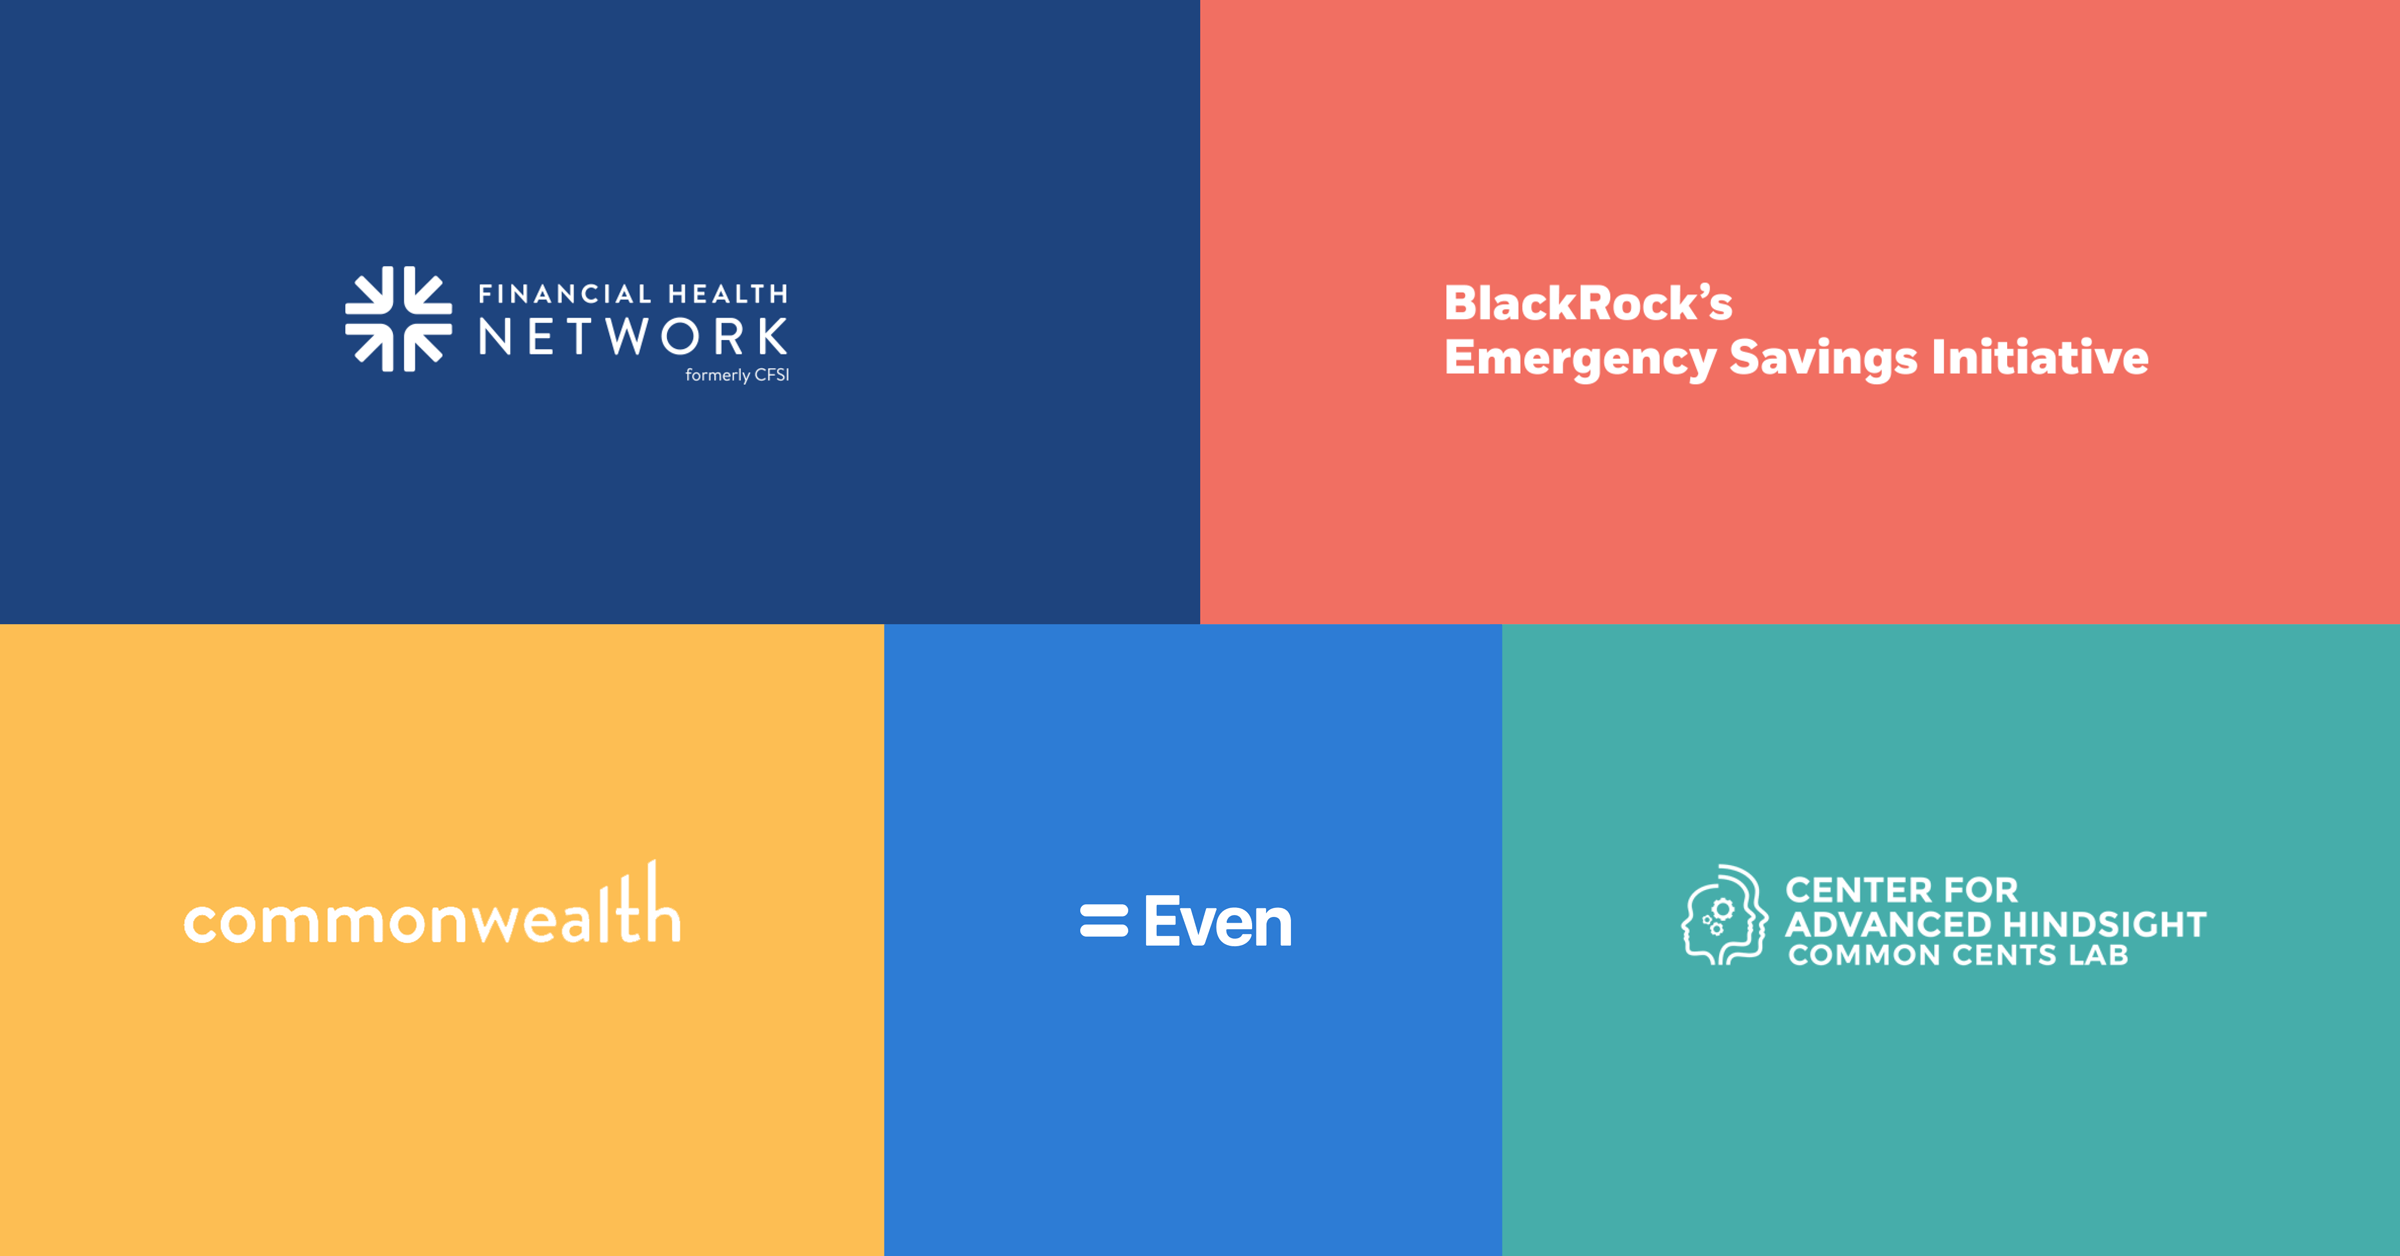 A series of squares showing logos for The Financial Health Network, BlackRock's Emergency Savings Initiative, Commonwealth, Even, and the Center for Advanced Hindsight Common Cents Lab